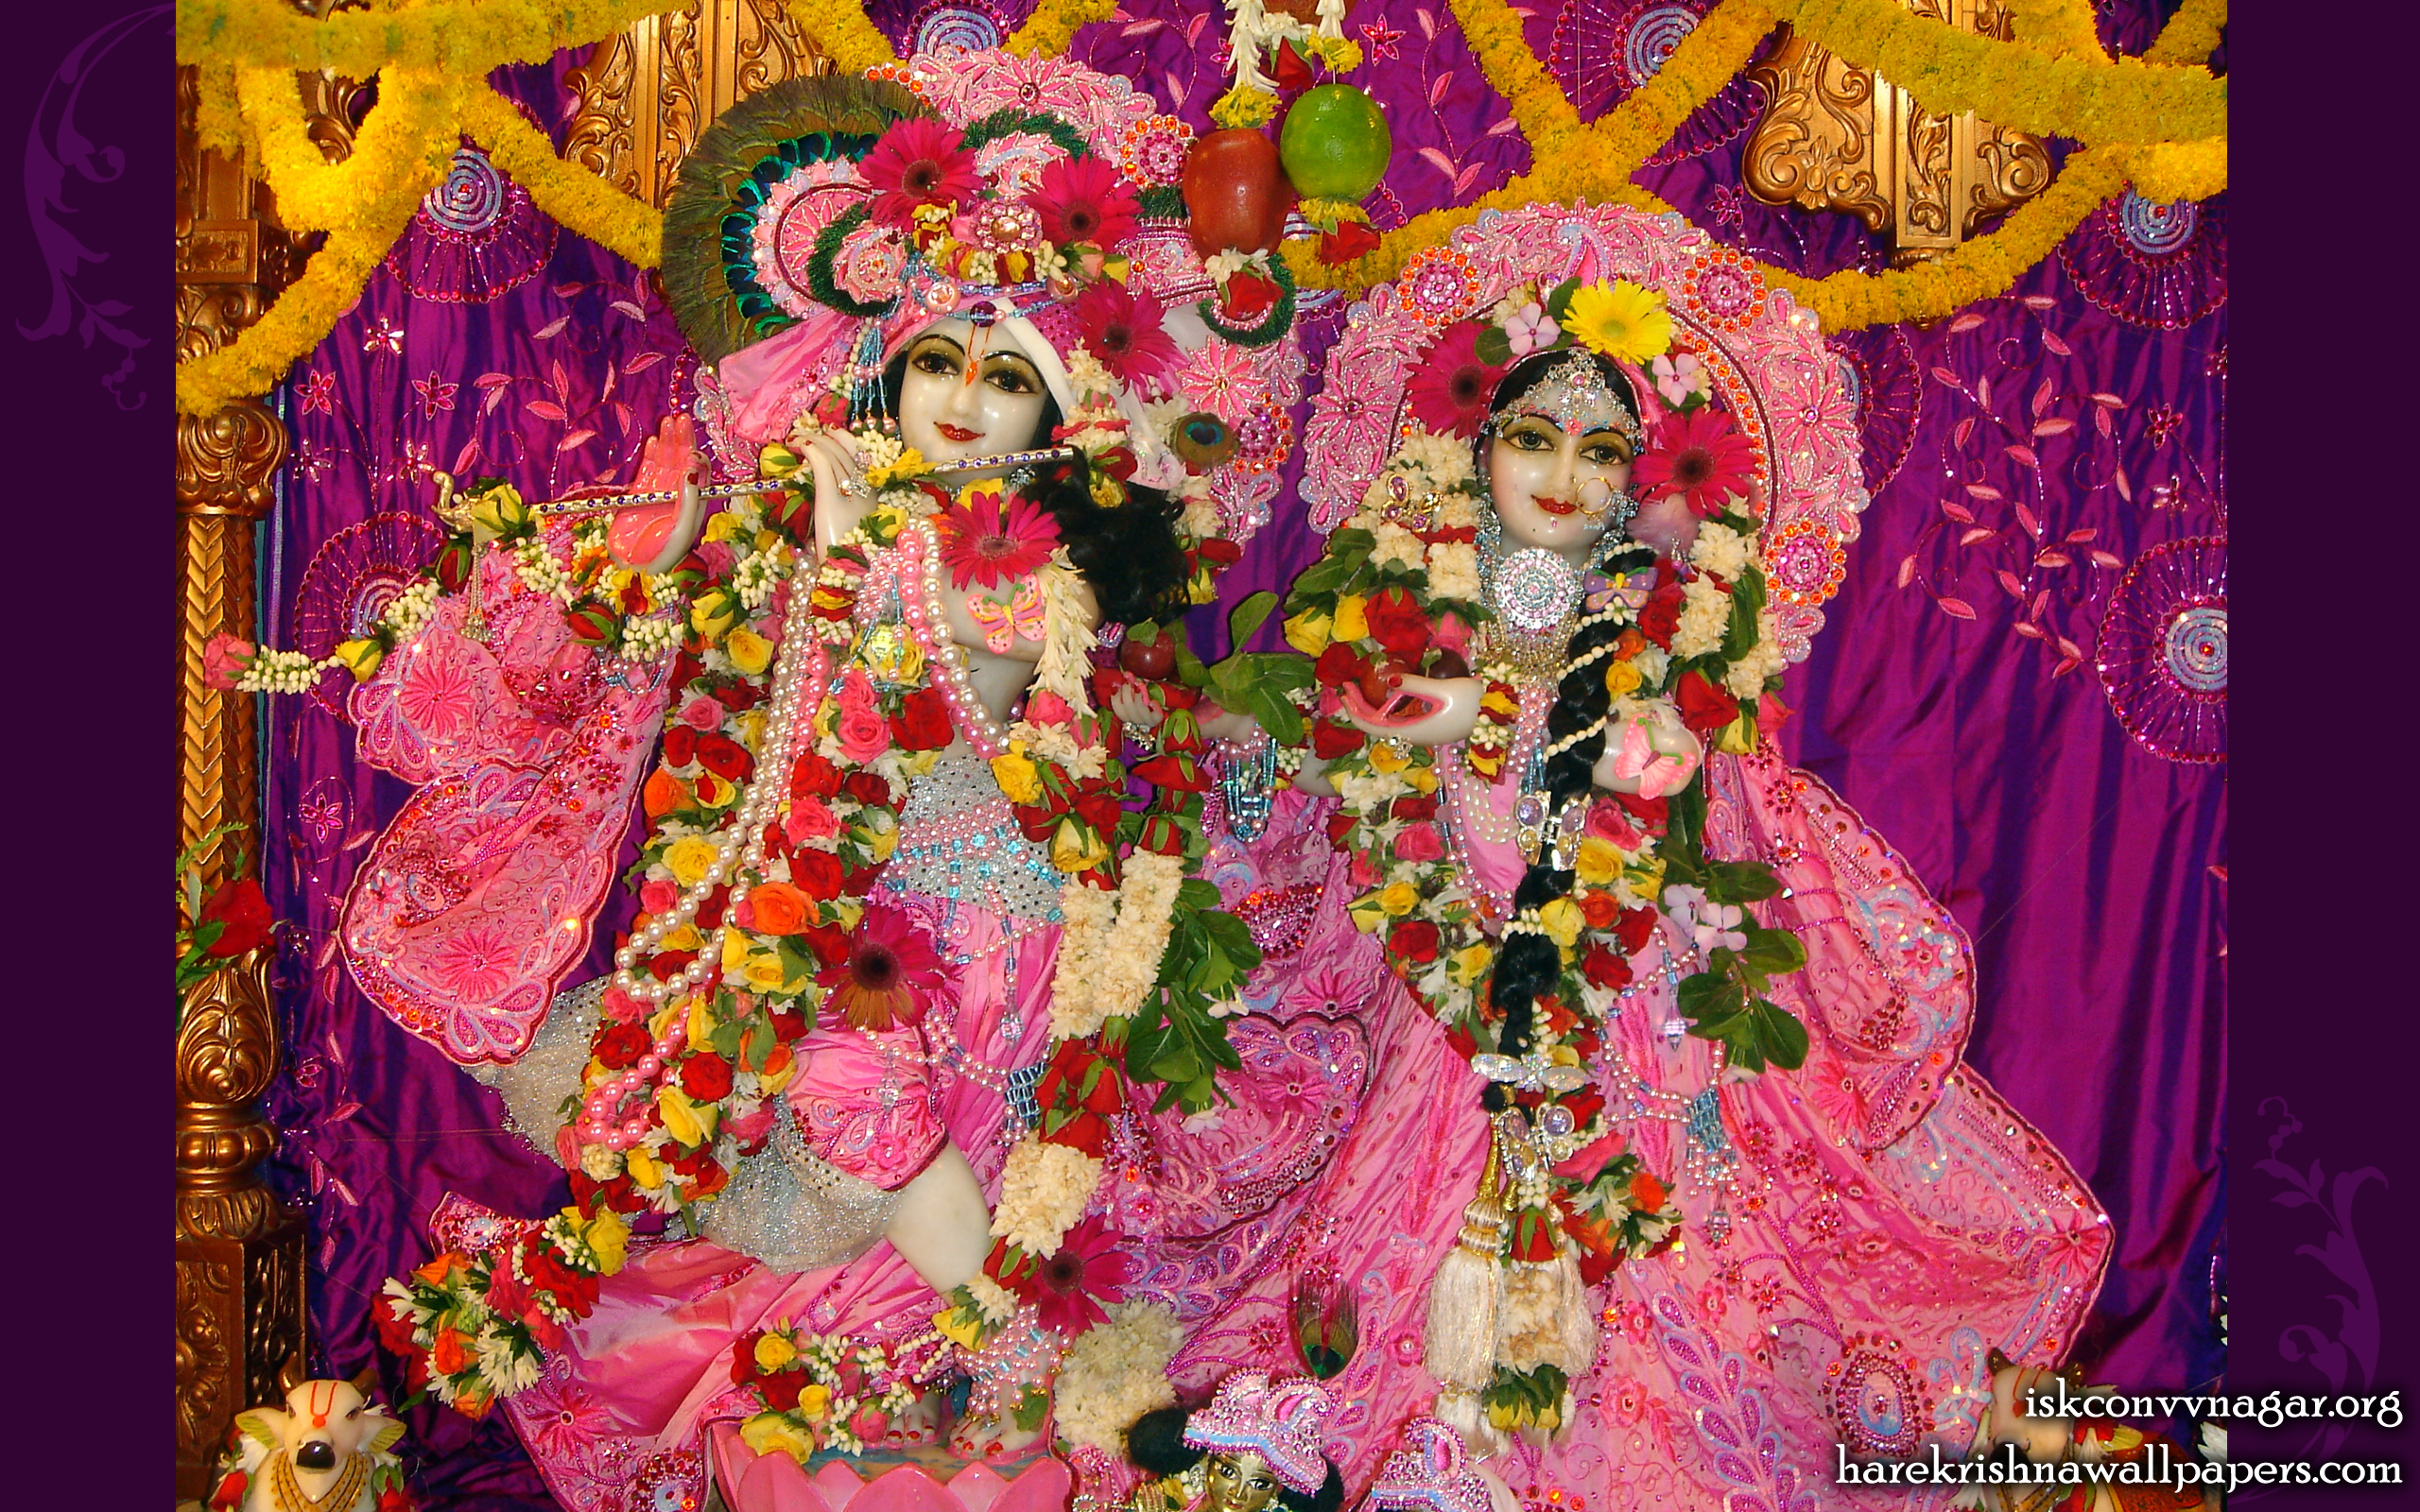 Sri Sri Radha Giridhari Wallpaper (002) Size 2560x1600 Download